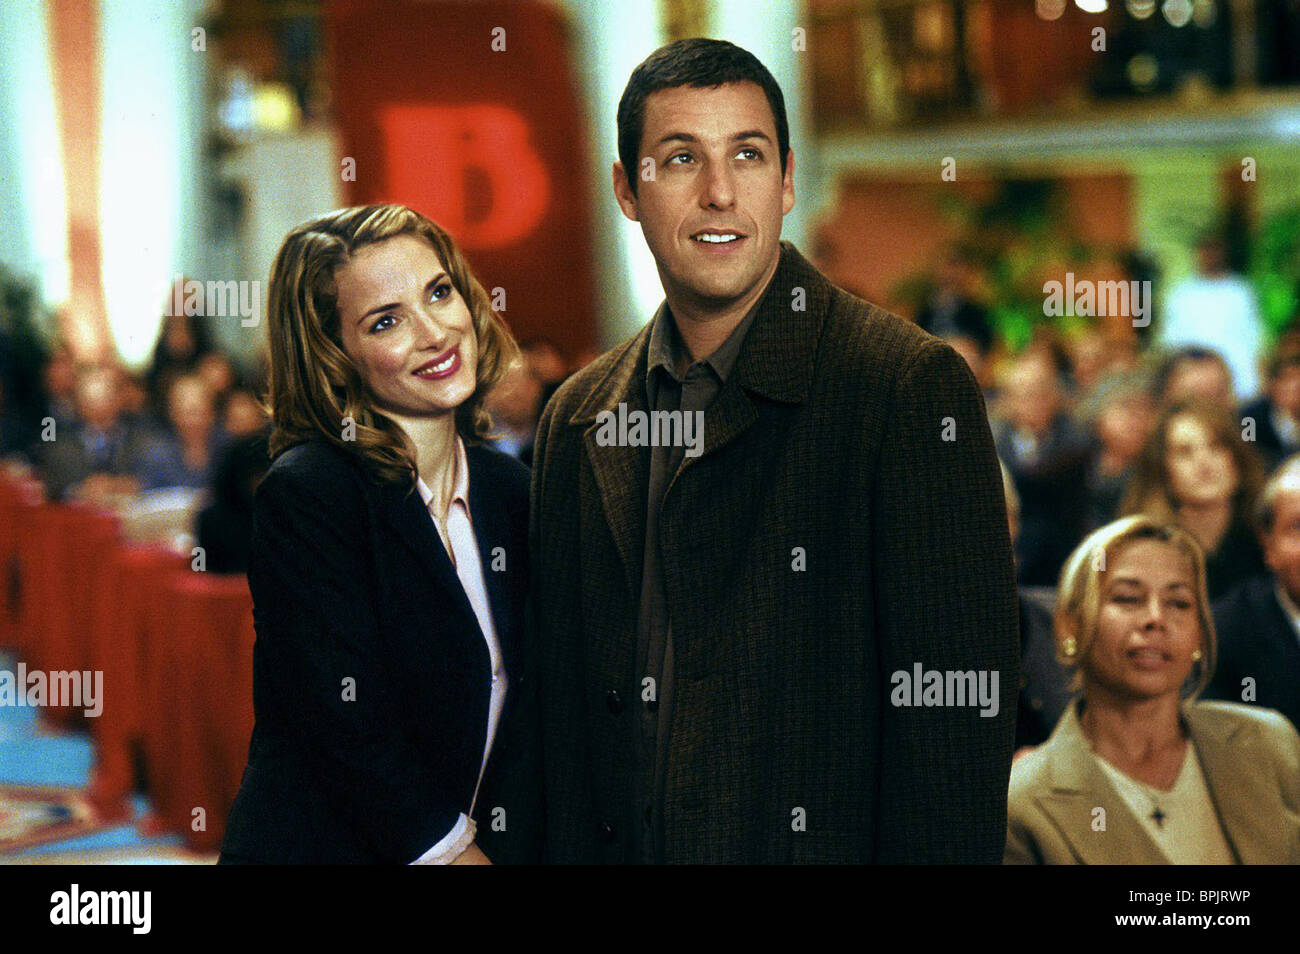 Mr Deeds And Winona Ryder High Resolution Stock Photography And Images Alamy